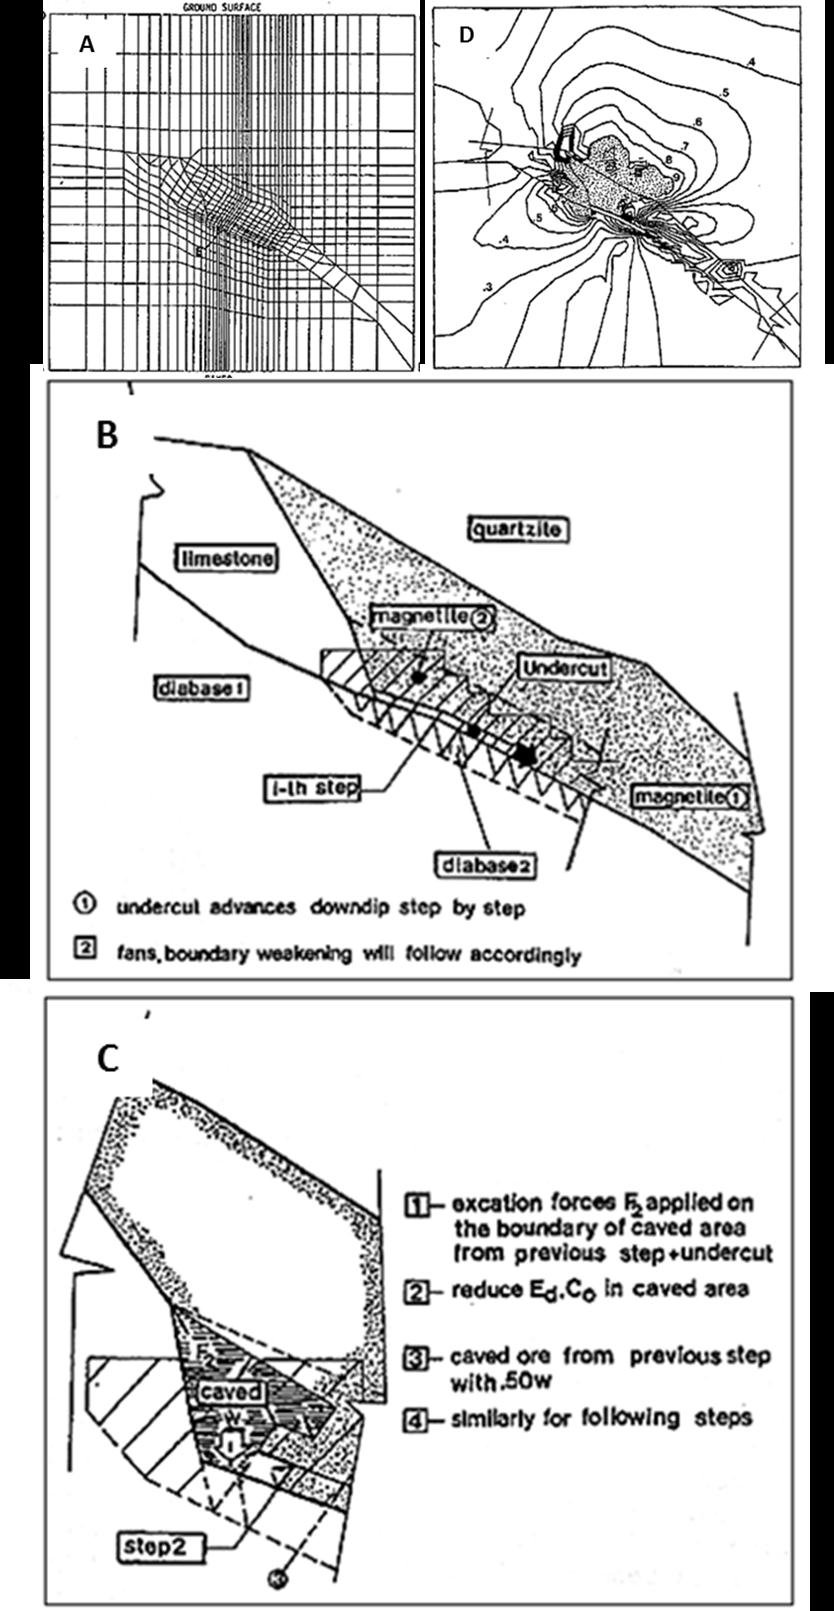 medium resolution of development of two dimensional numerical modelling approaches for cave download scientific diagram